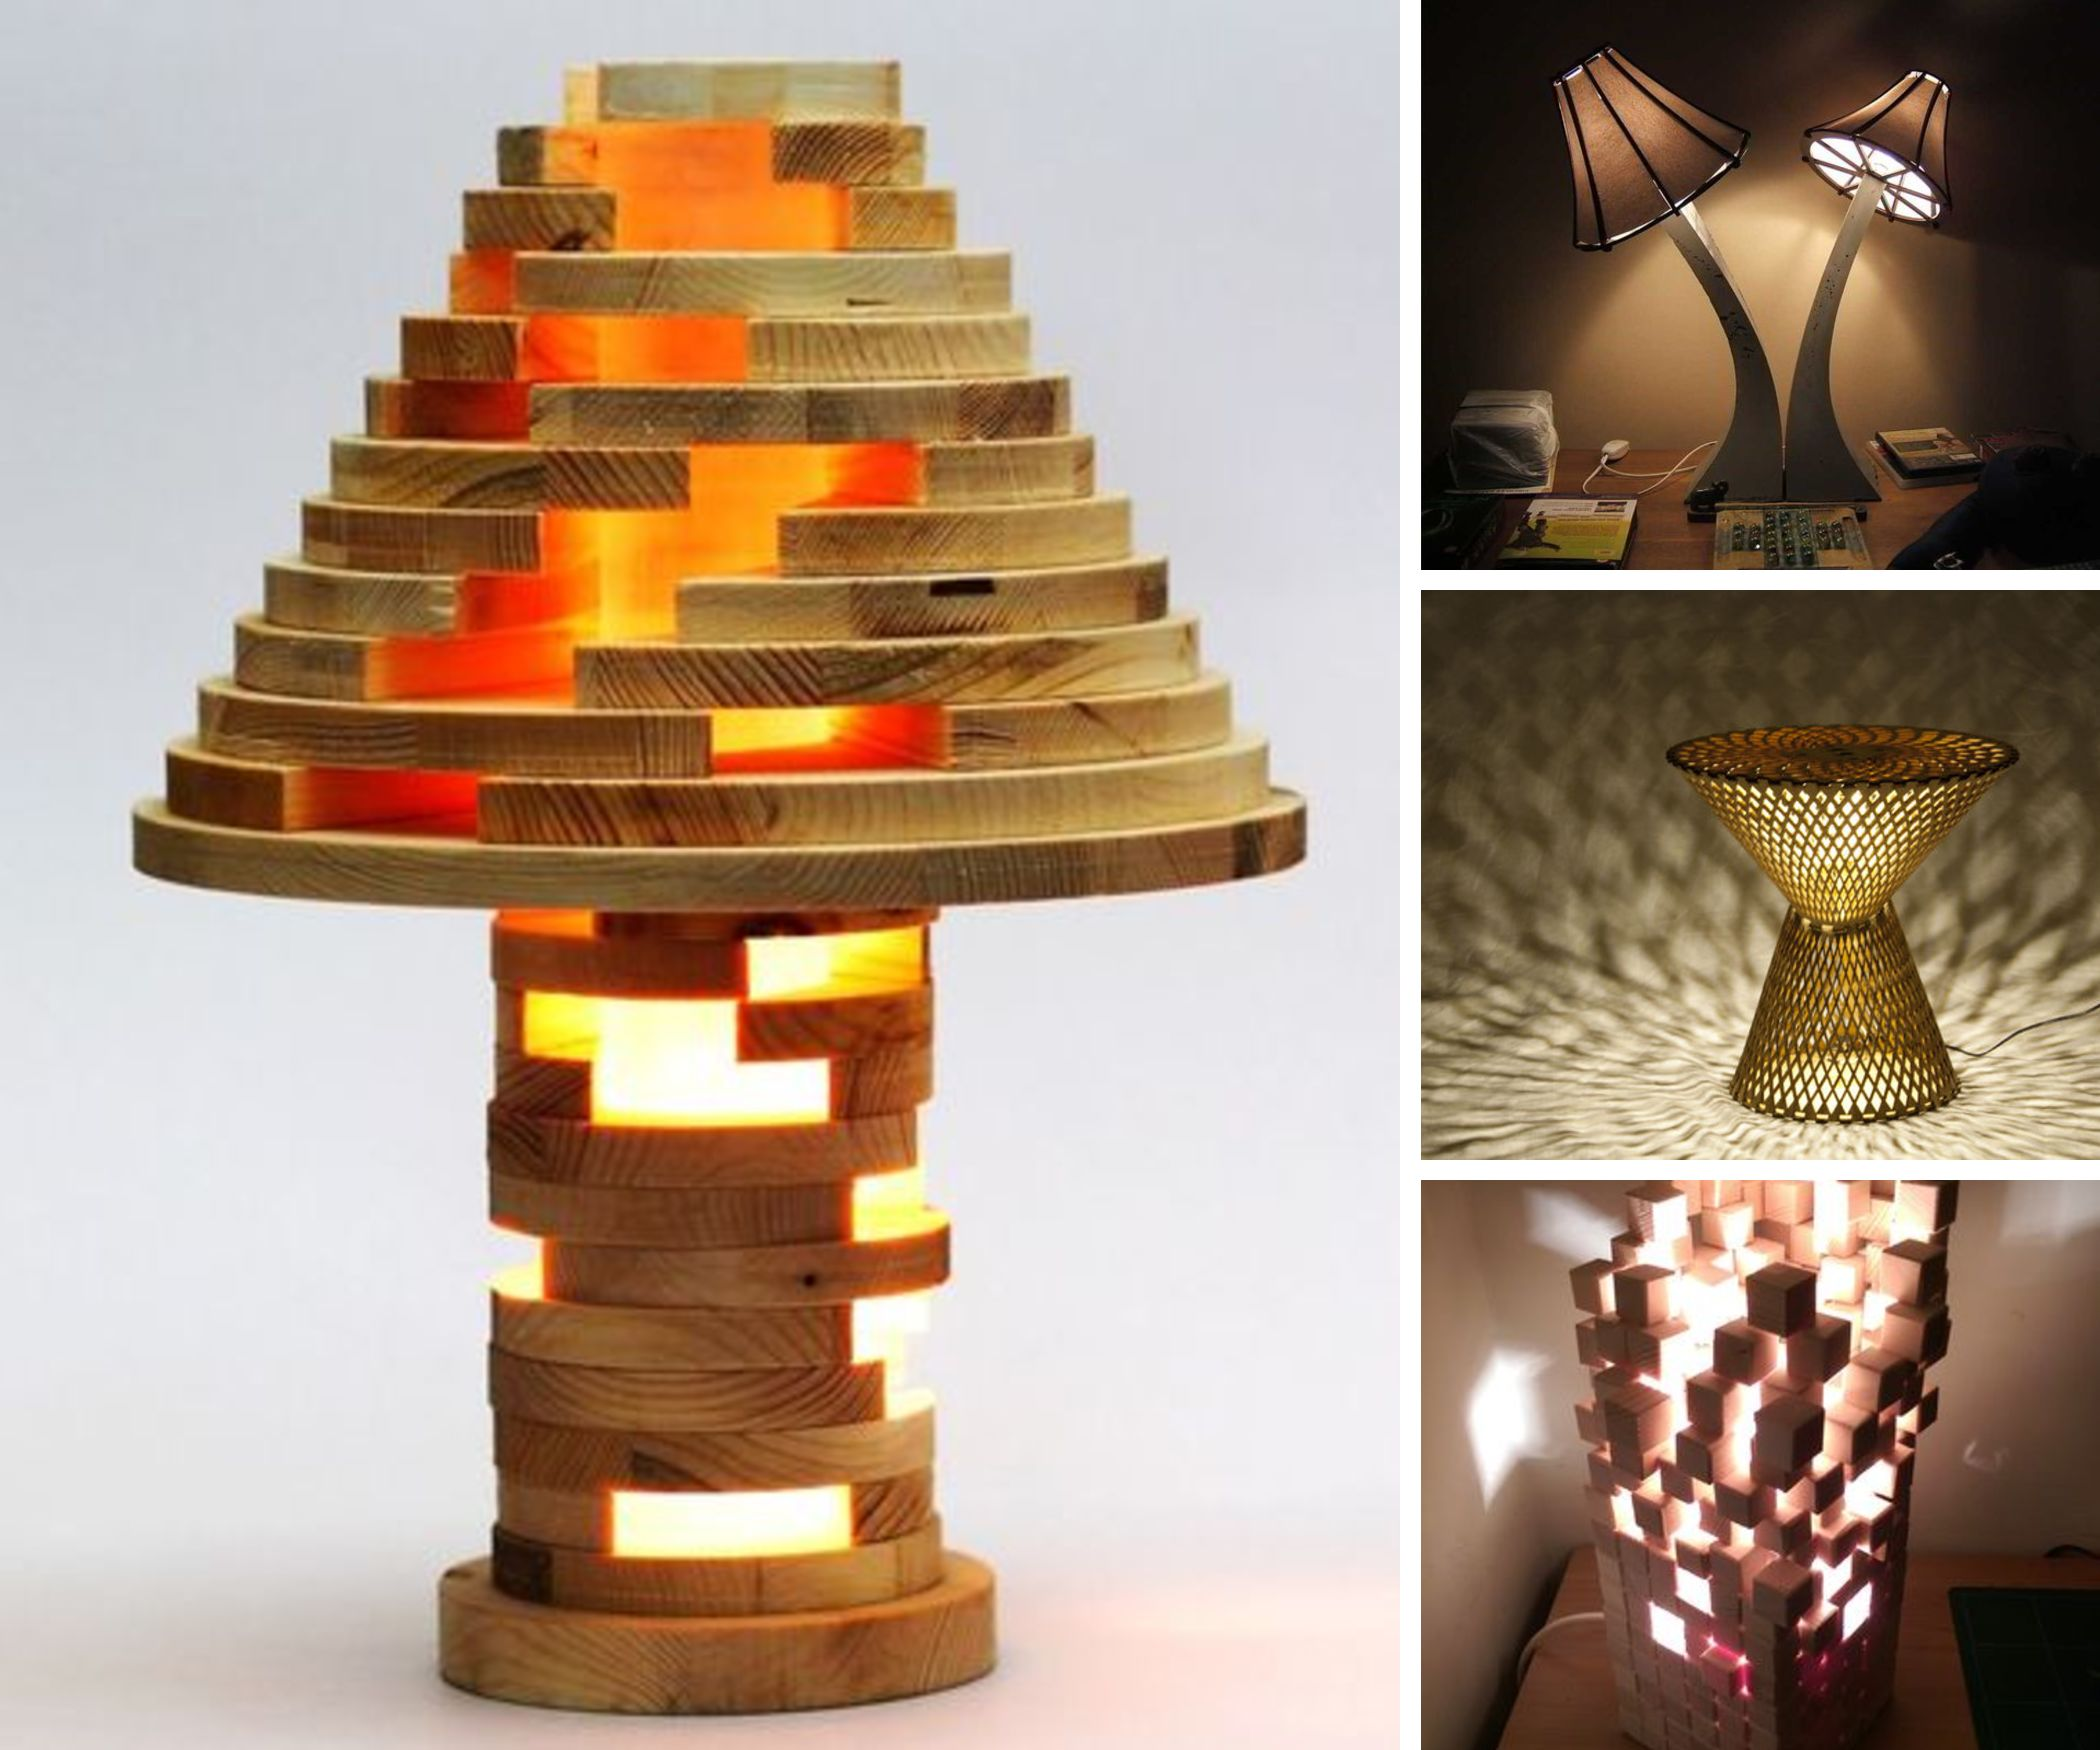 The Ultimate Lamp Collection (You Should Build at Least One of These for Your Home!)